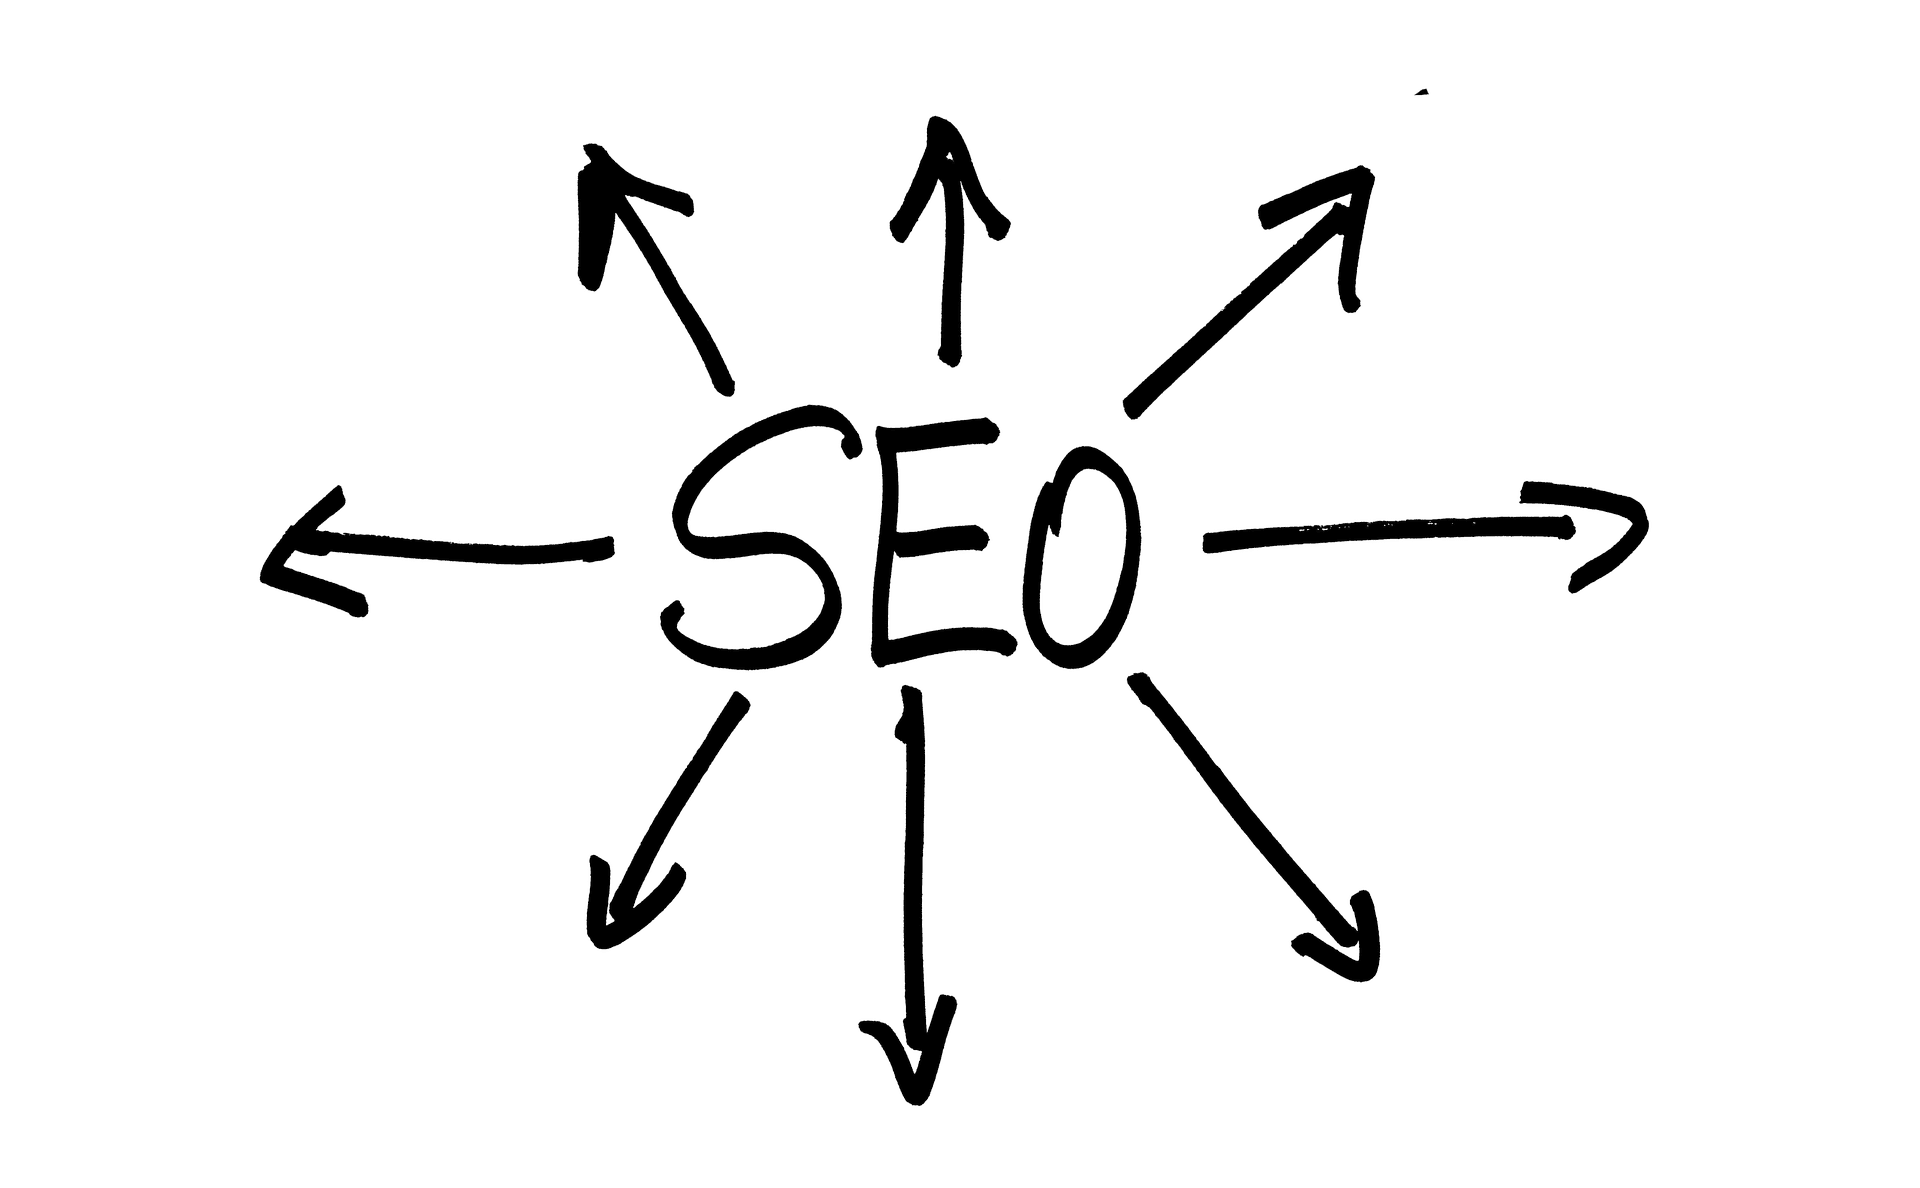 Search Engine Optimisation  - search engine optimization 1359427 1920 - Understanding Technical SEO: Keyword Research